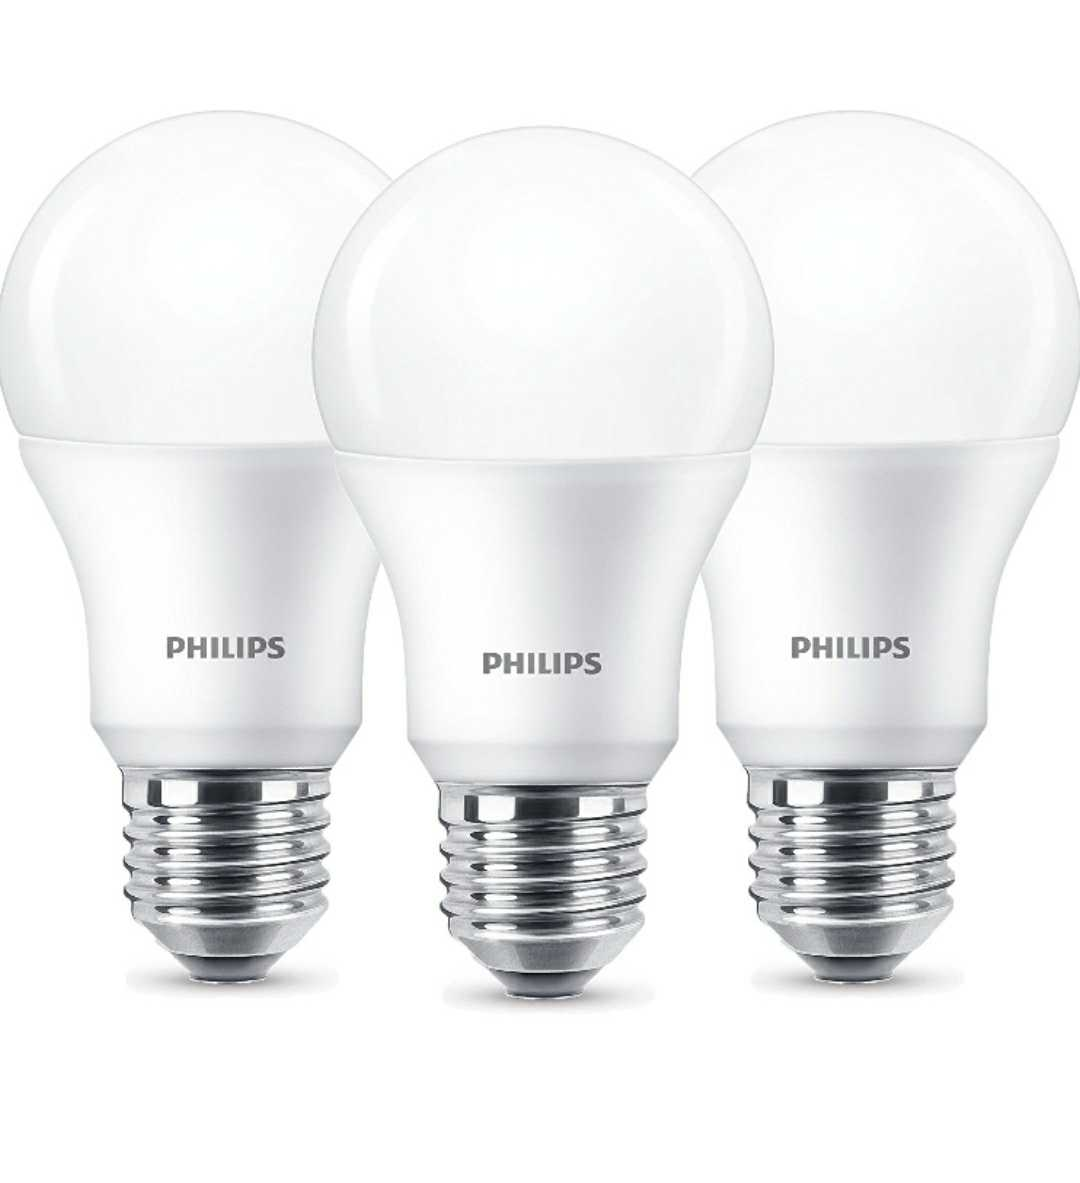 Amazon tagesangebot 3x philips led lampen warmwei 2700 for Lampen 5000 kelvin